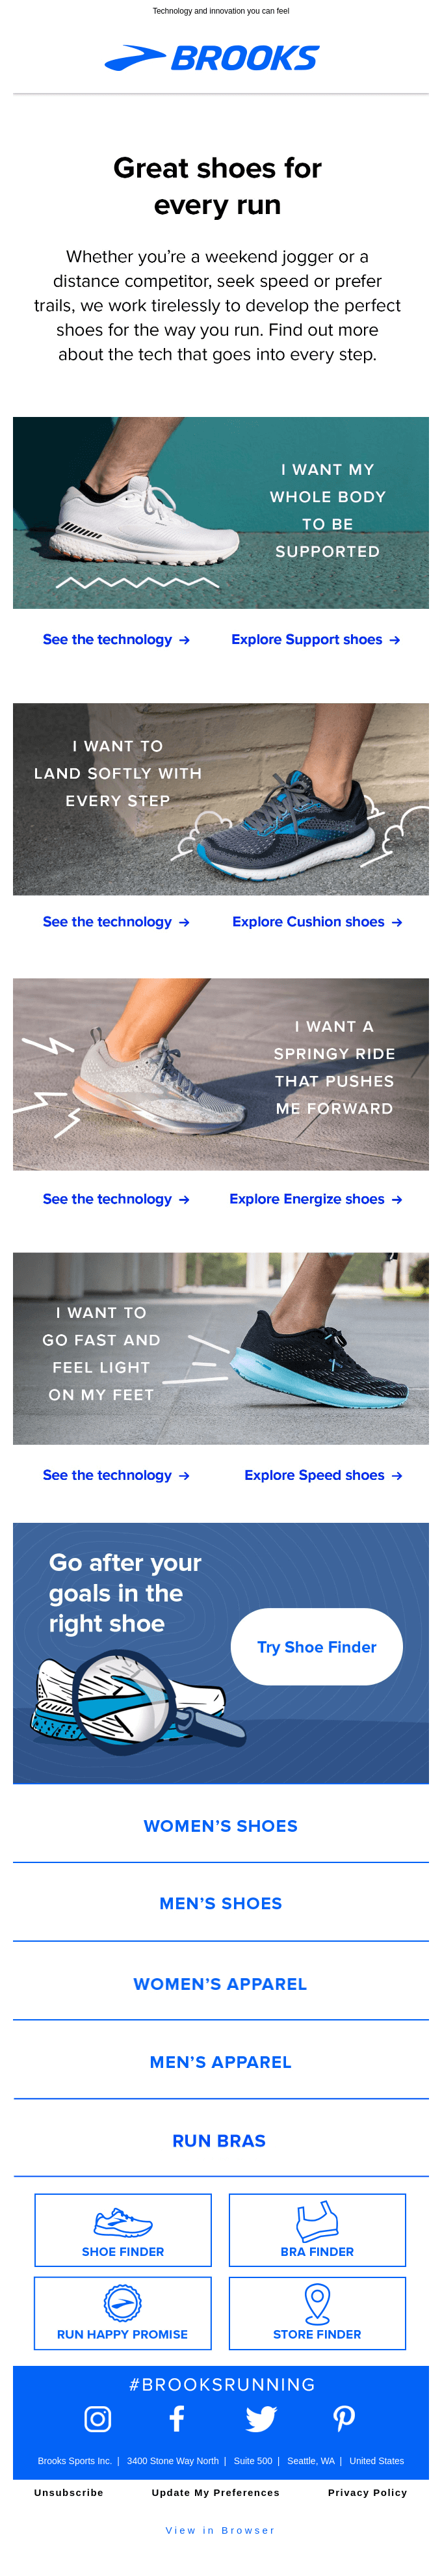 We build shoes for the way you run